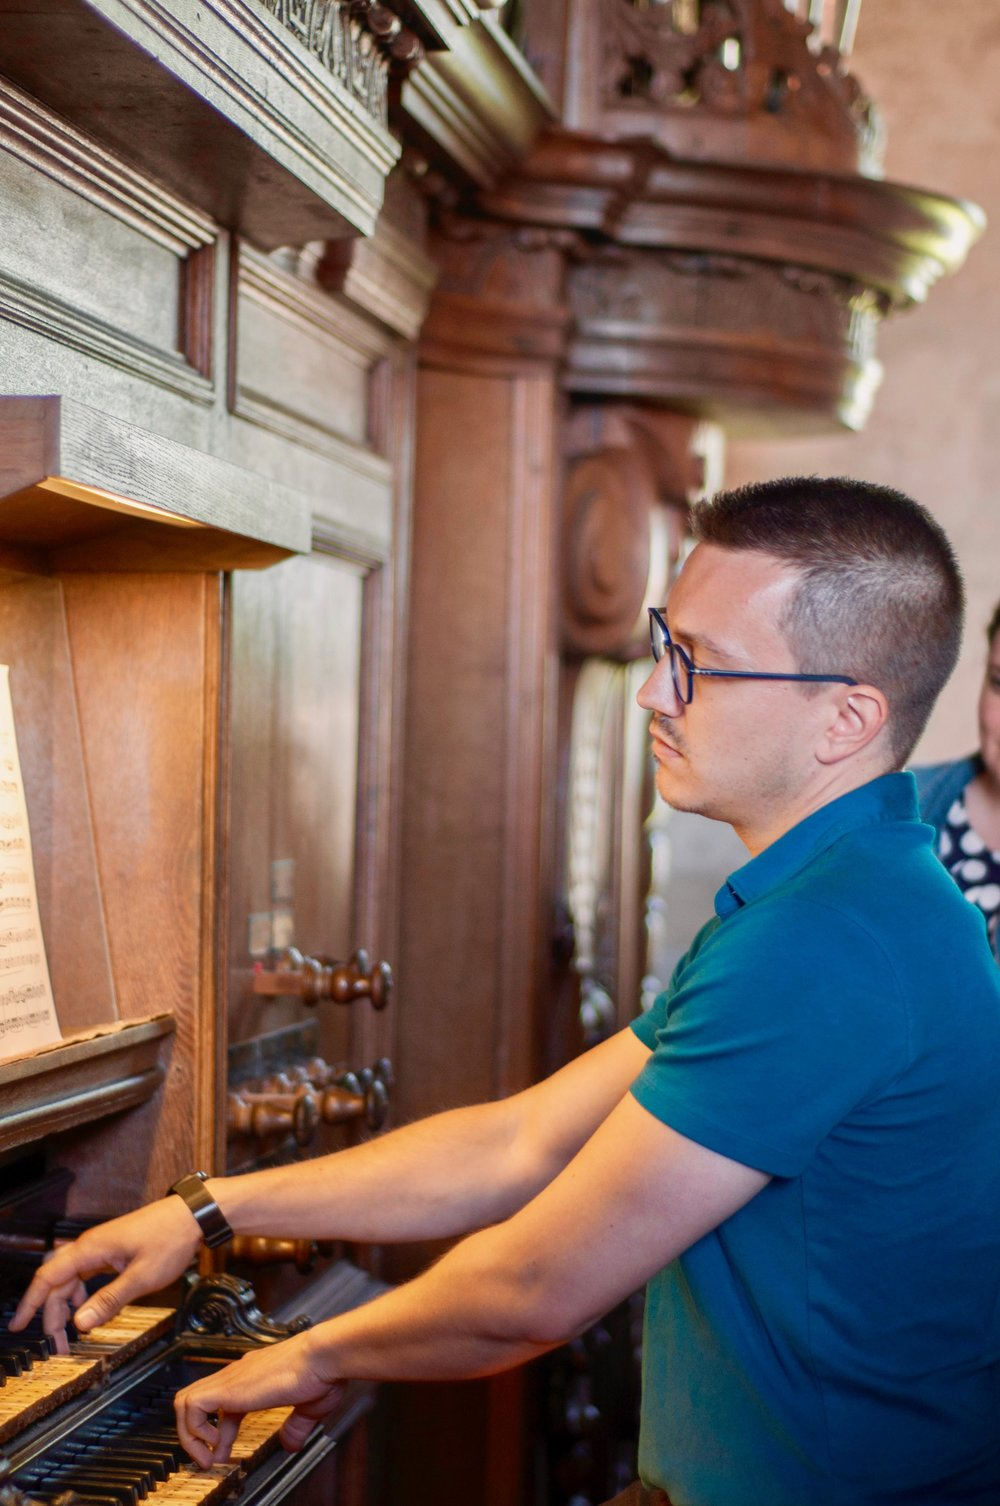 Corey De Tar plays the 1733 Hinsz organ in Leens, Holland.